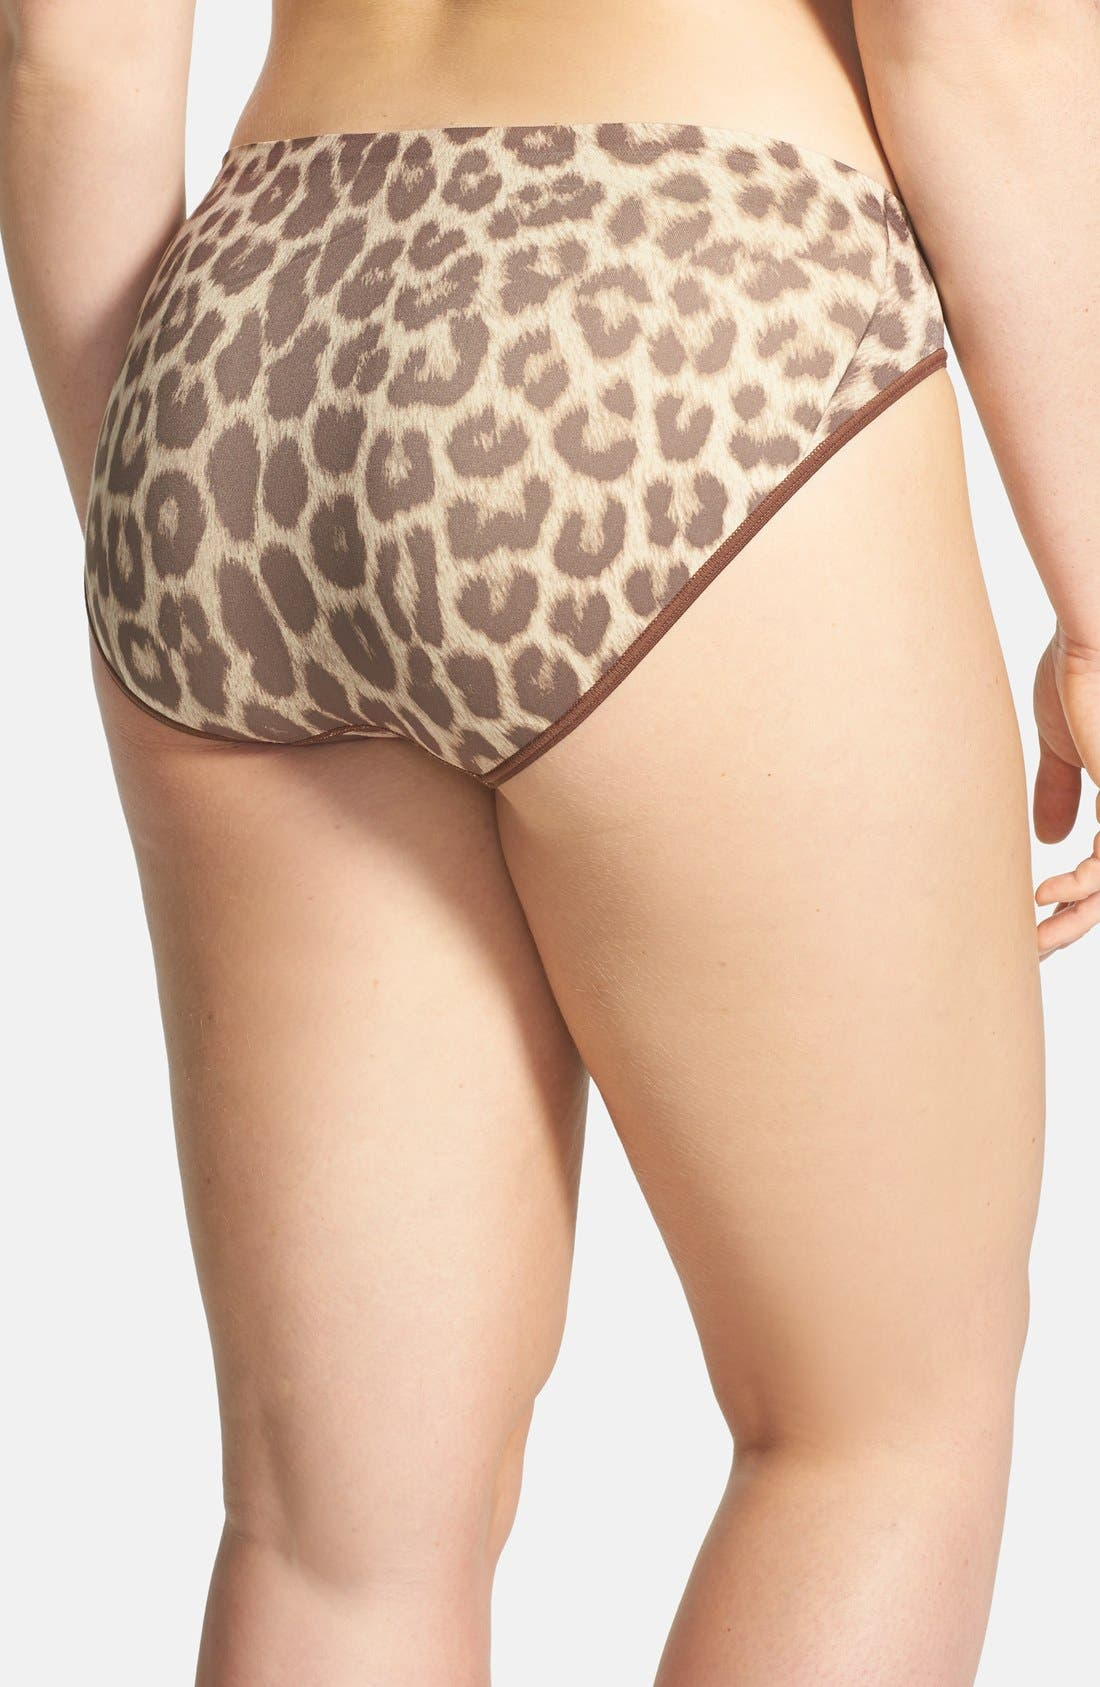 Alternate Image 2  - Shimera Print Seamless High Cut Briefs (Plus Size) (3 for $30)